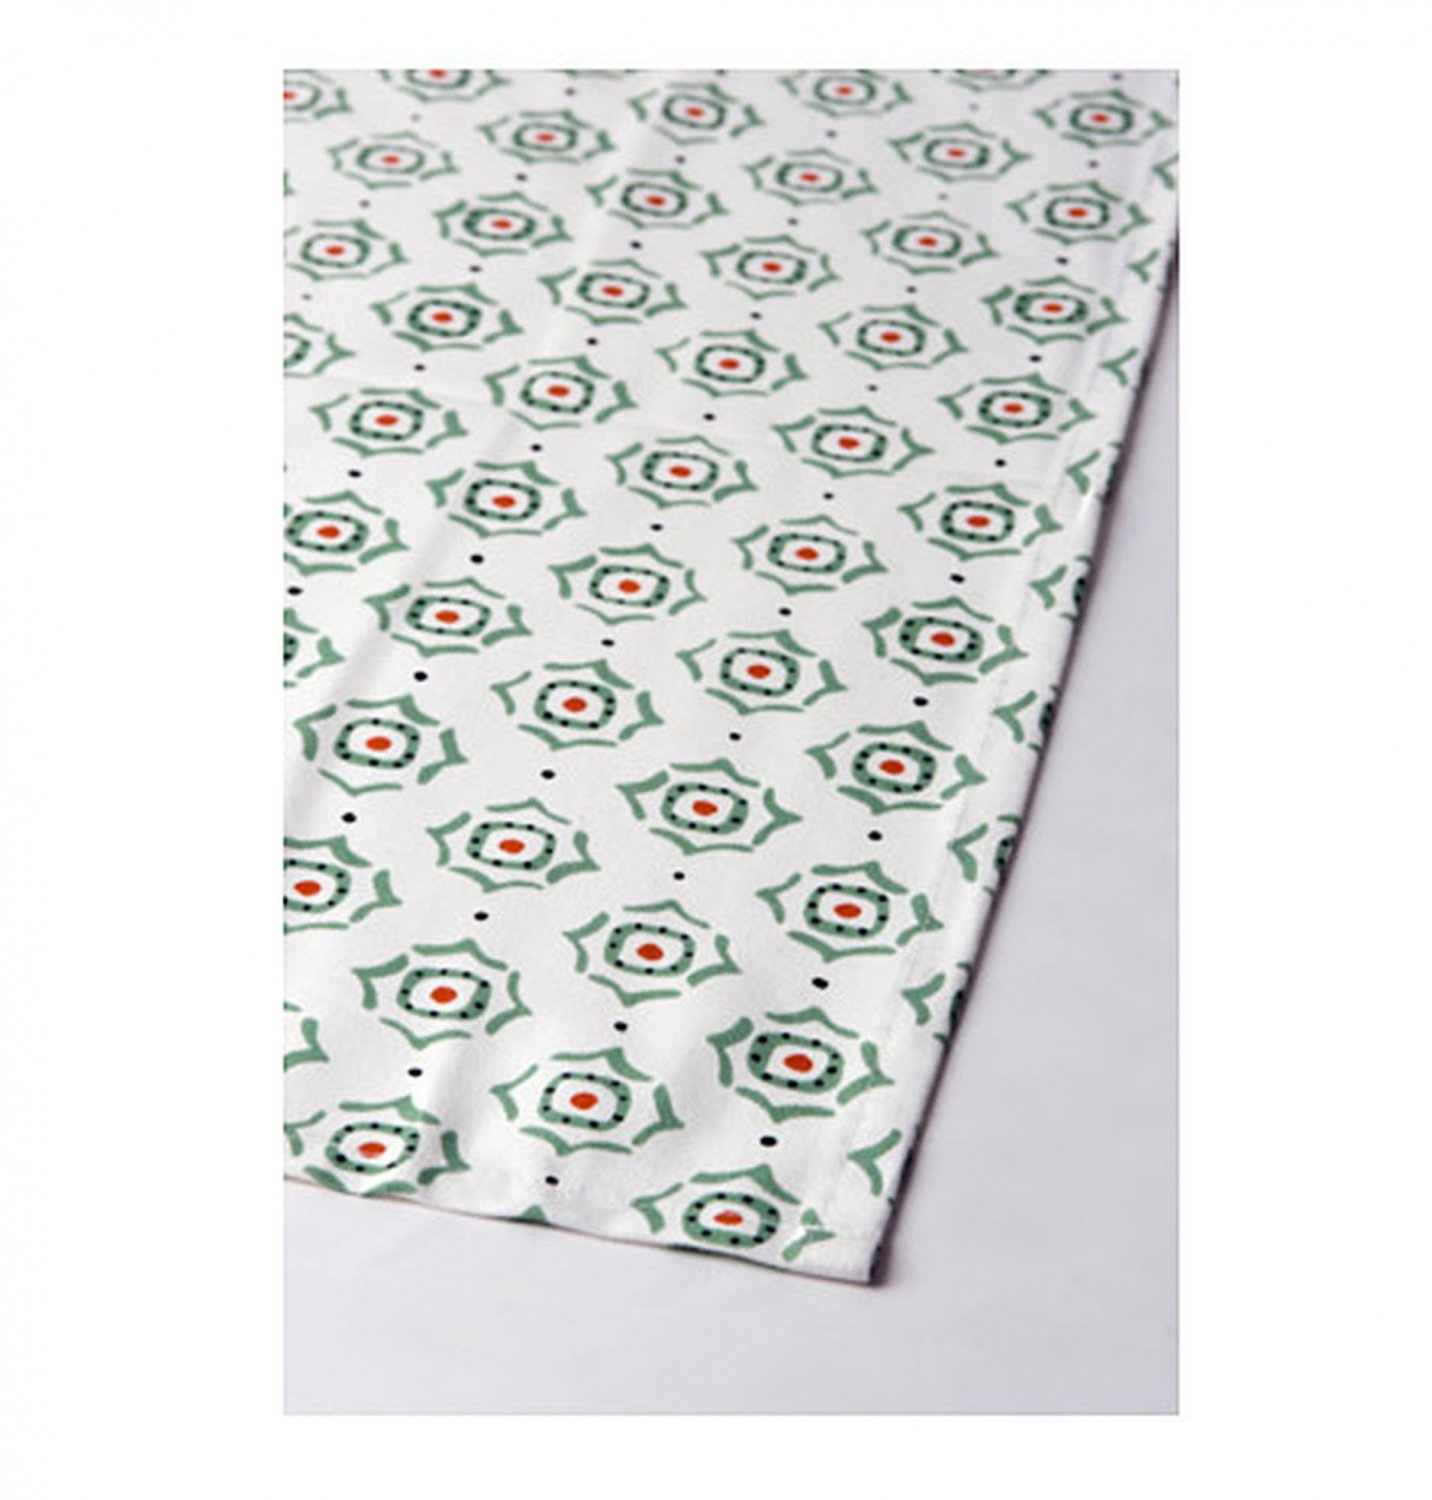 "IKEA Enigt TABLE RUNNER Gray White Red Green 102"" x 16"" Retro Xmas"